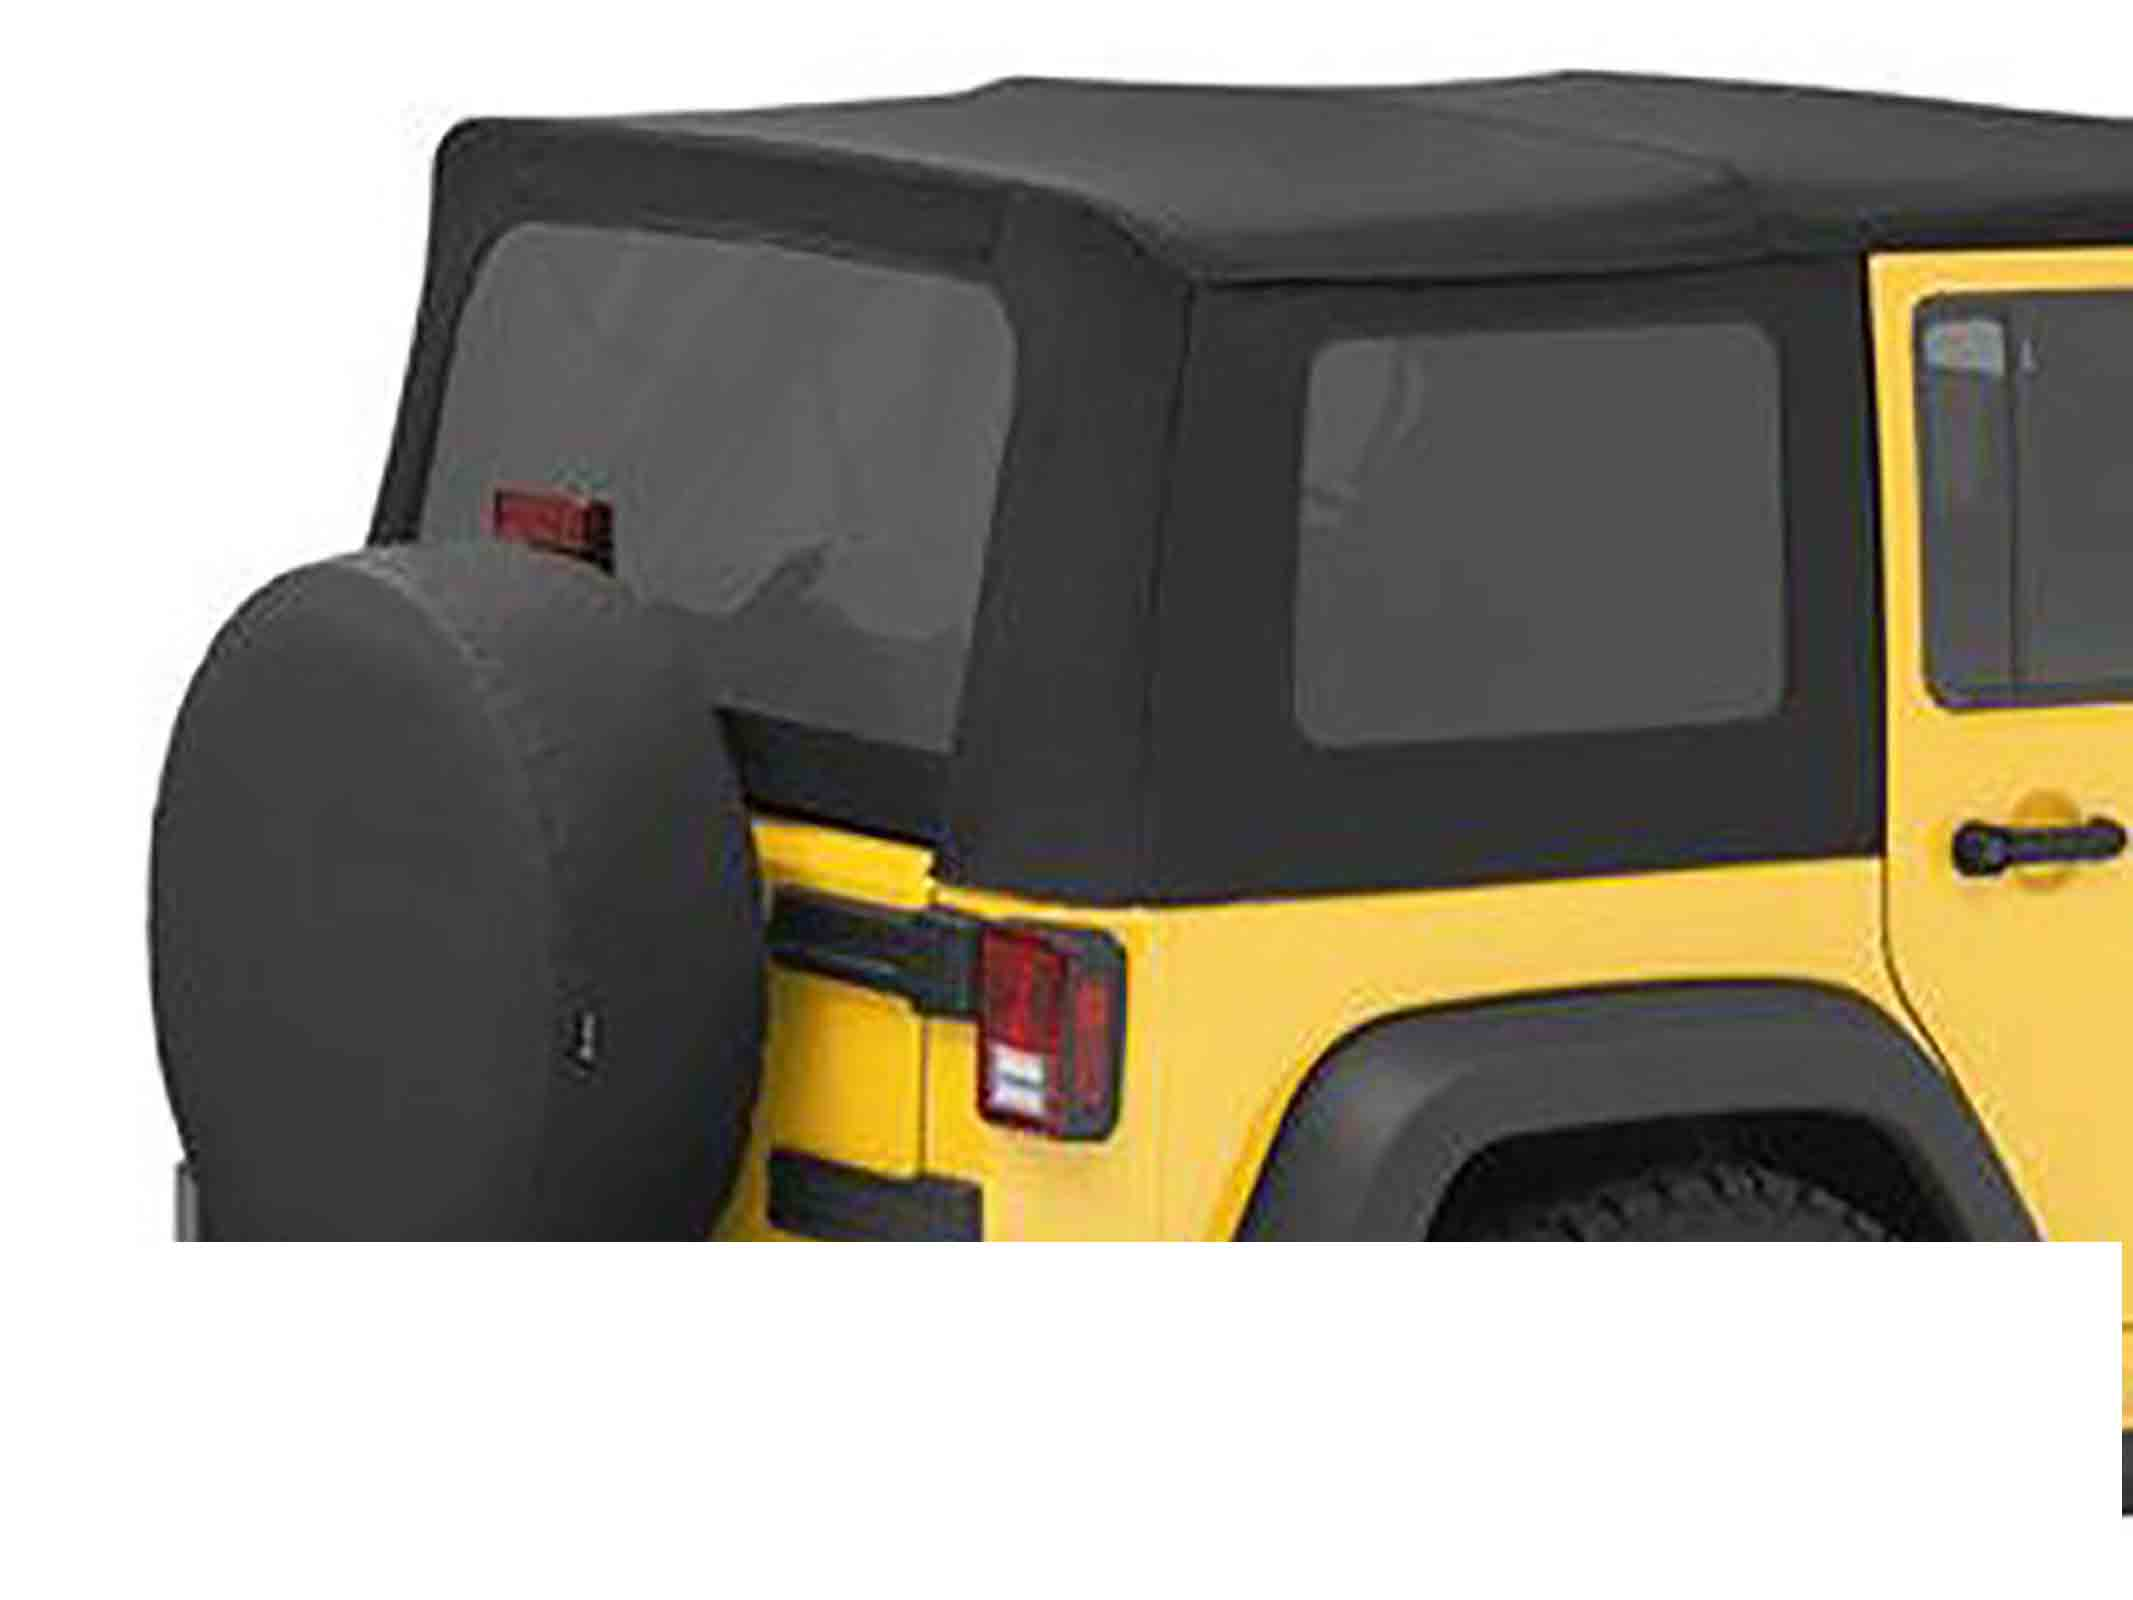 Vetri scuri wrangler jk 11 17 4 porte adatto per softtop soft top capottina originale ricambi jeep